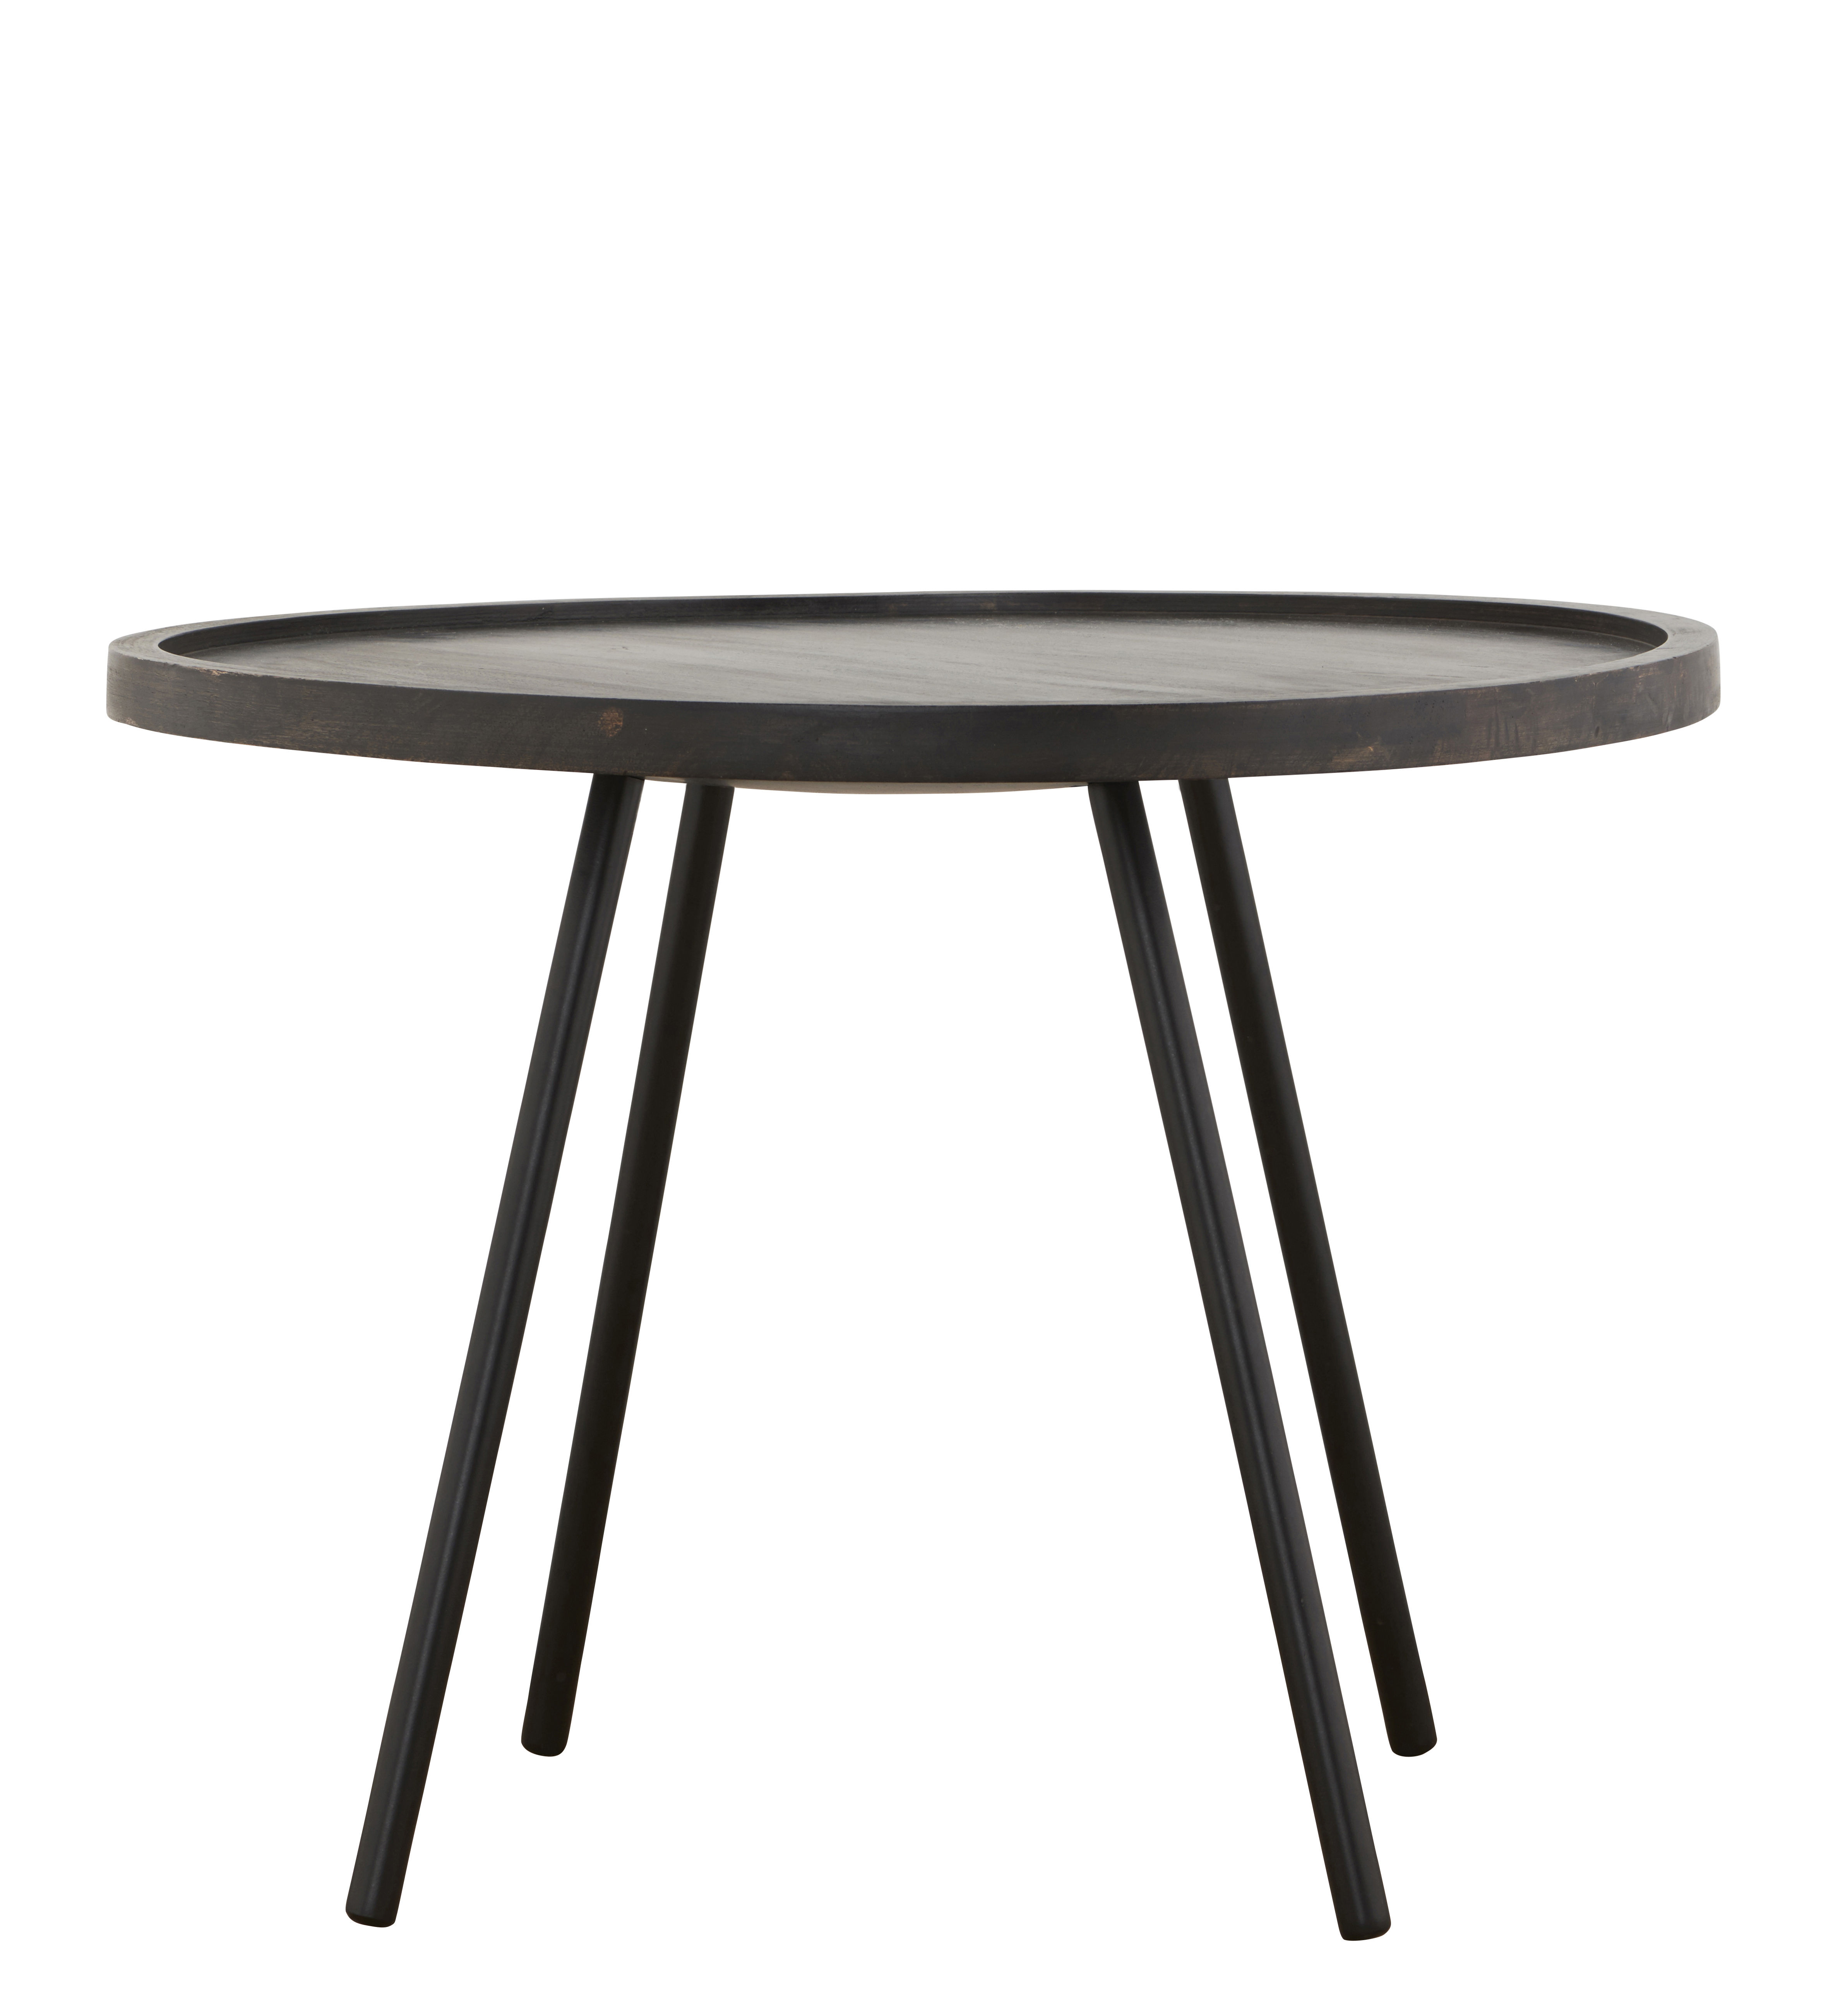 table basse juco 60 x h 45 cm 60 x h 45 cm noir patin house doctor made in design. Black Bedroom Furniture Sets. Home Design Ideas